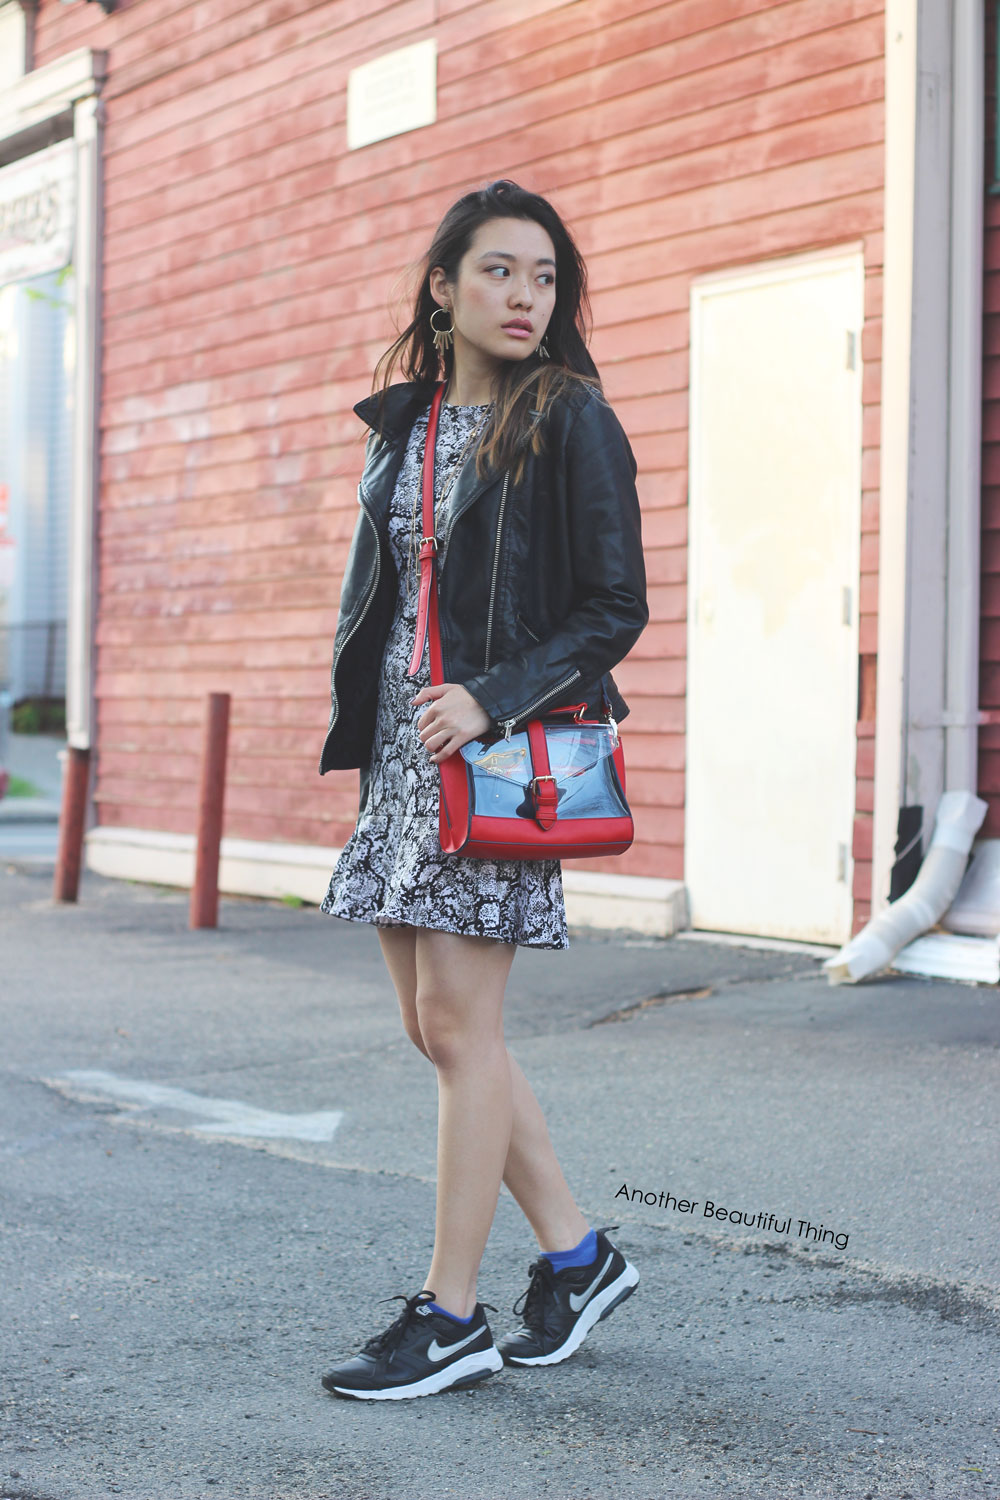 Snake print dress and black and white Nikes street style